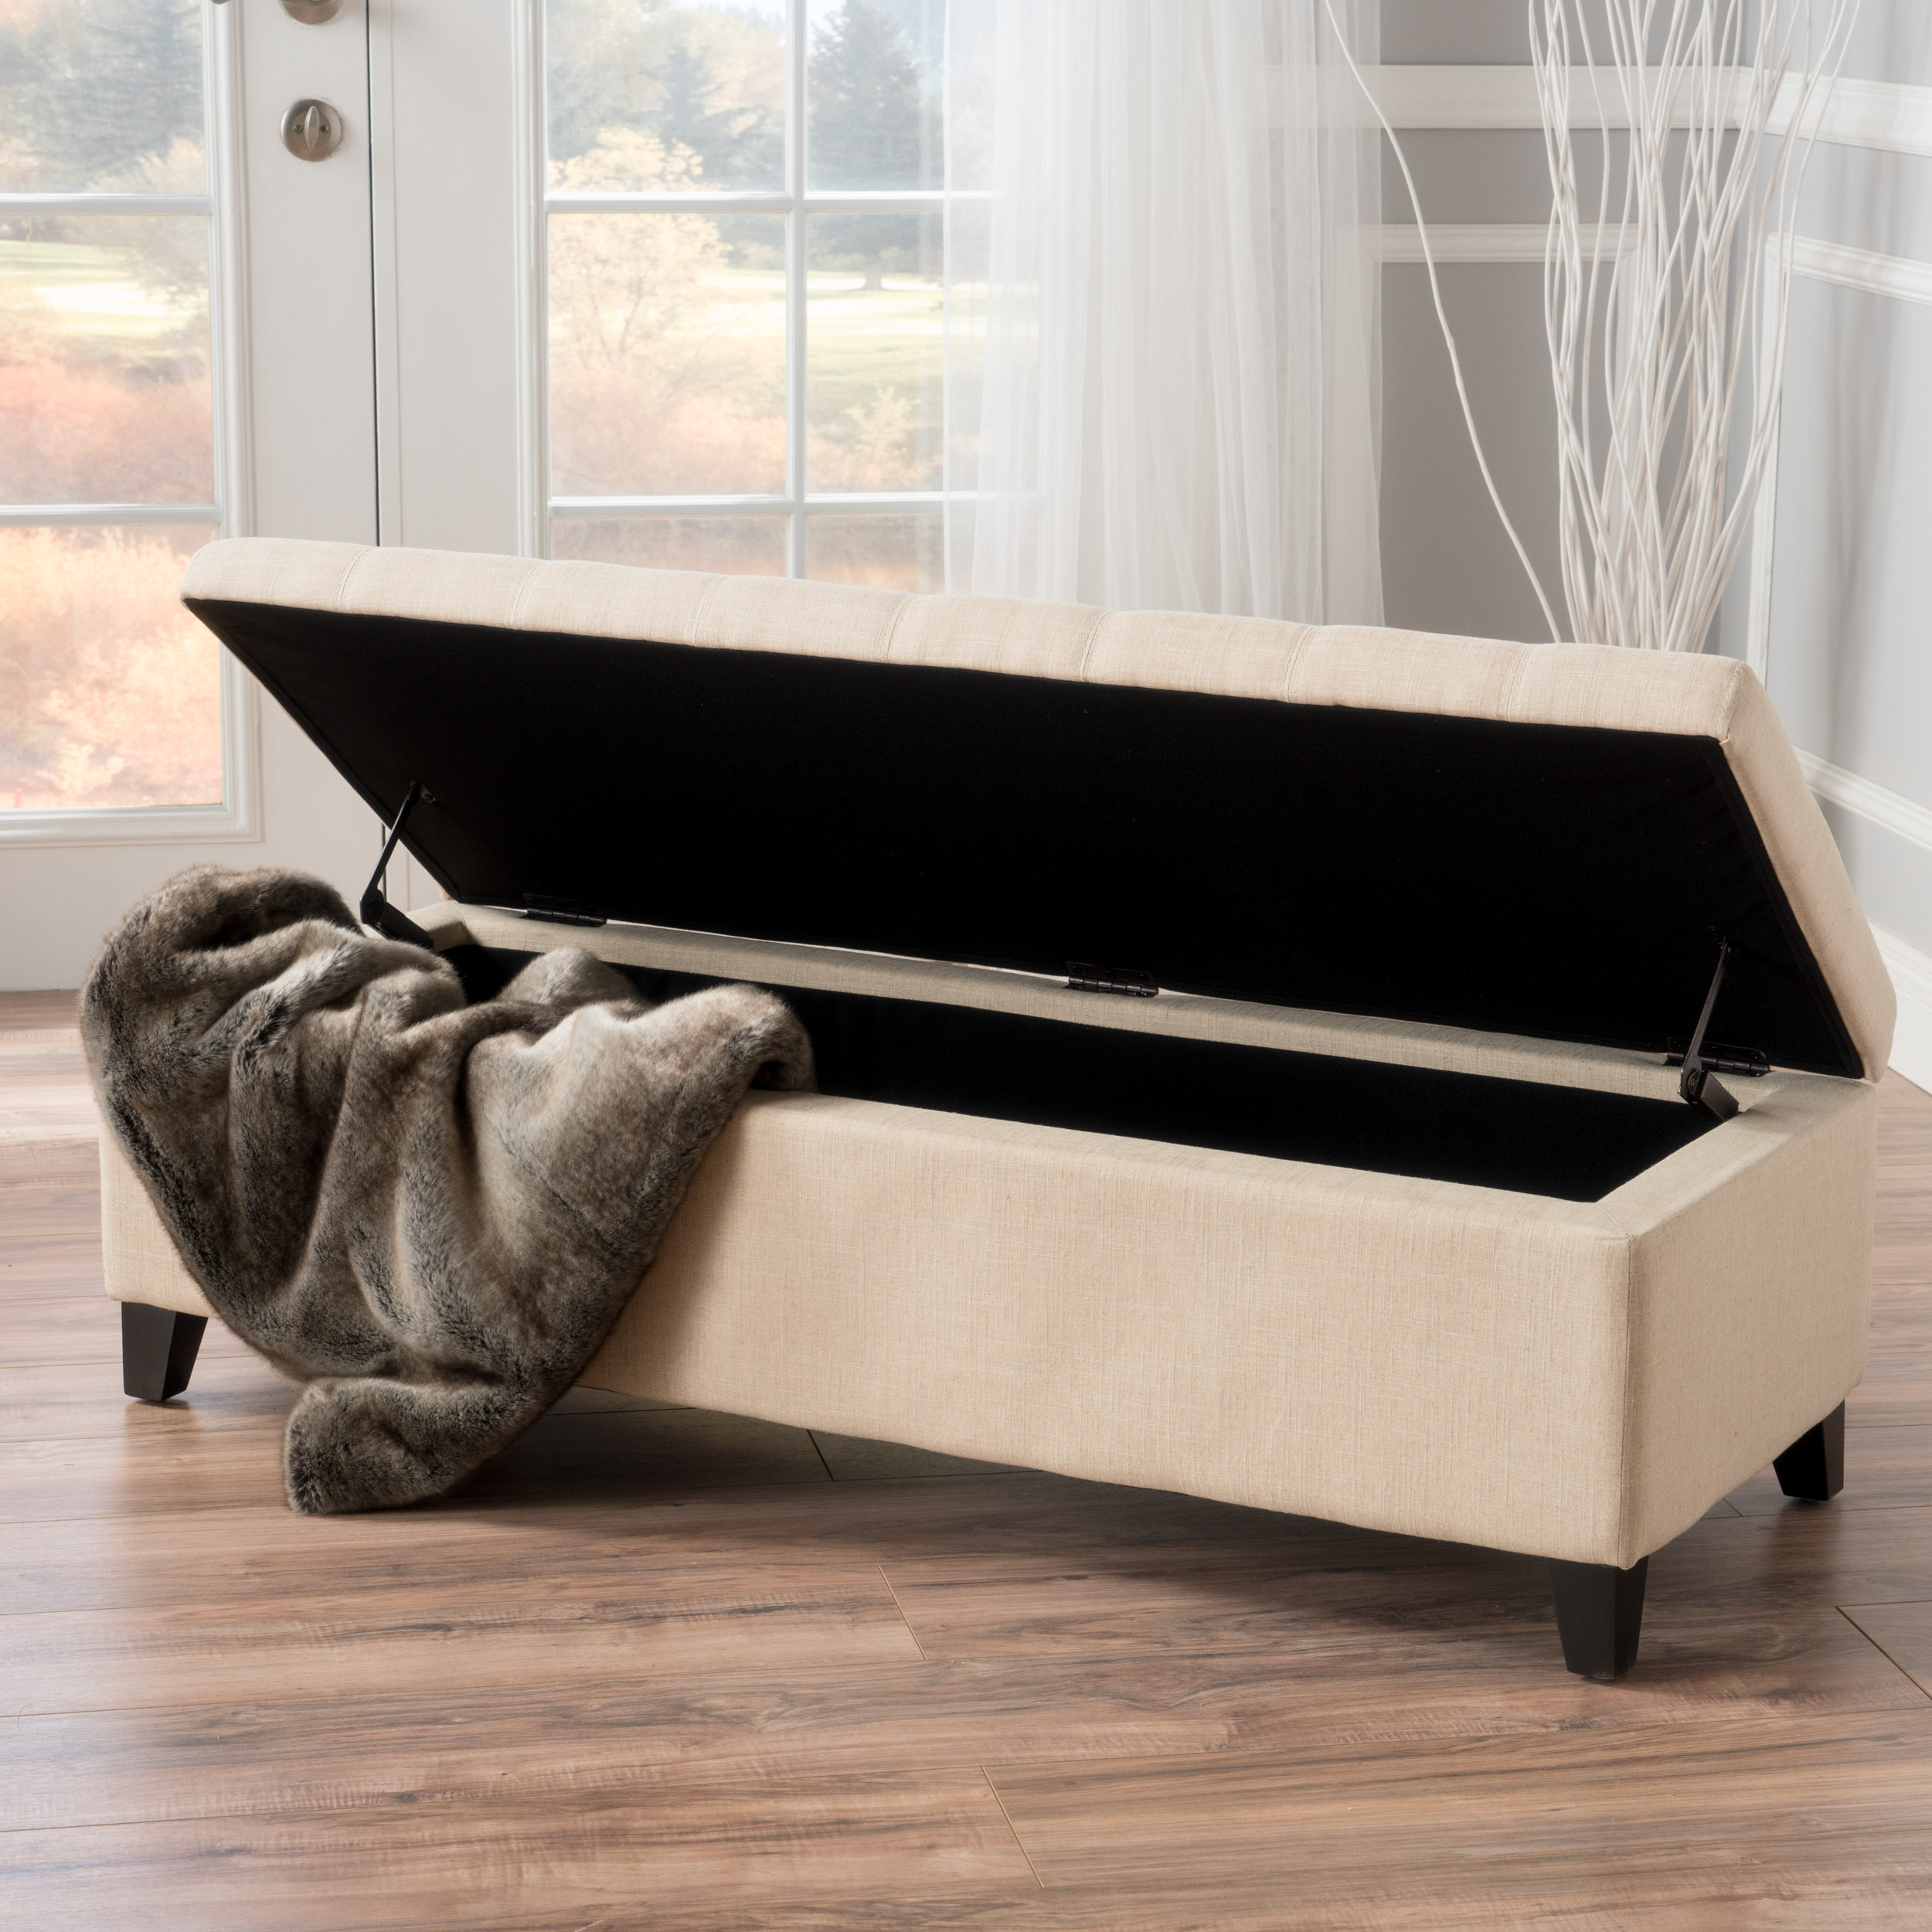 Munford Beige Tufted Fabric Storage Ottoman Bench